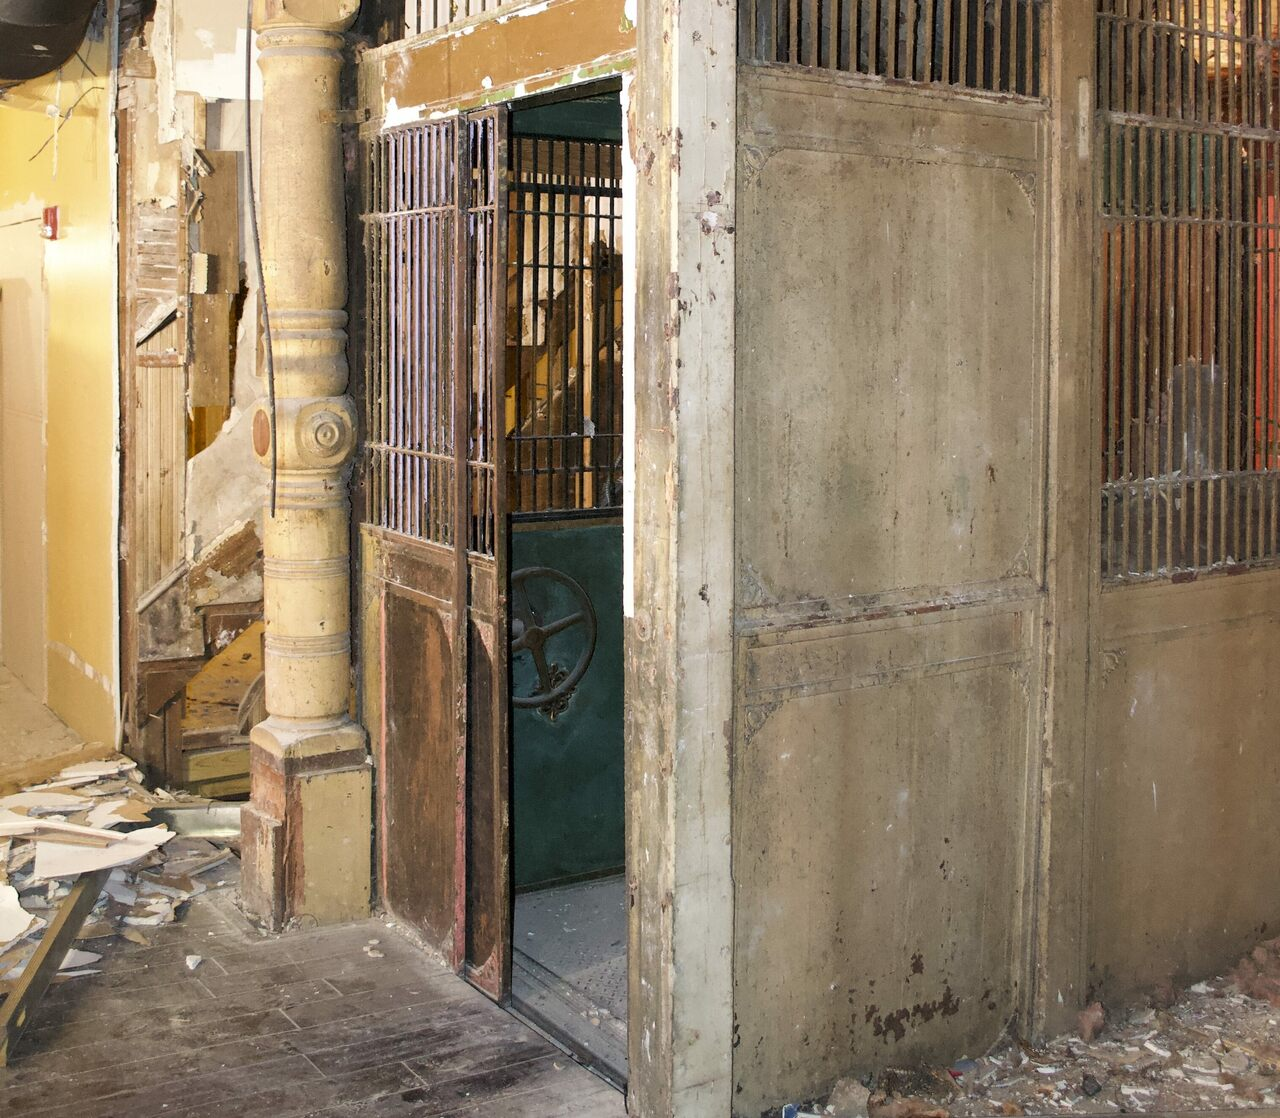 Behind some drywall emerged the building's long-forgotten original elevator.